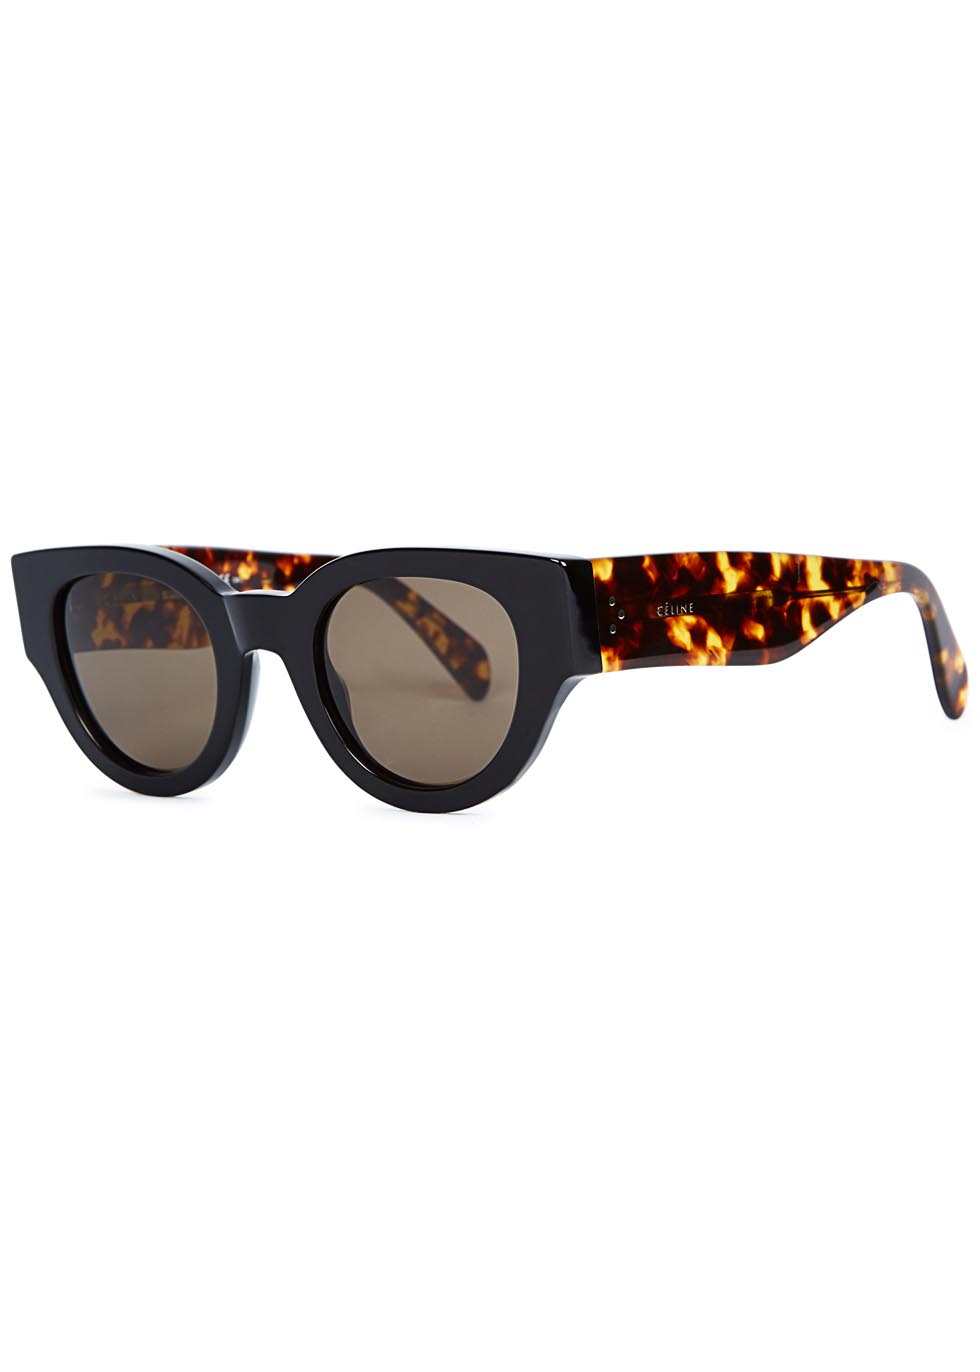 Black and tortoiseshell round-frame sunglasses - Celine